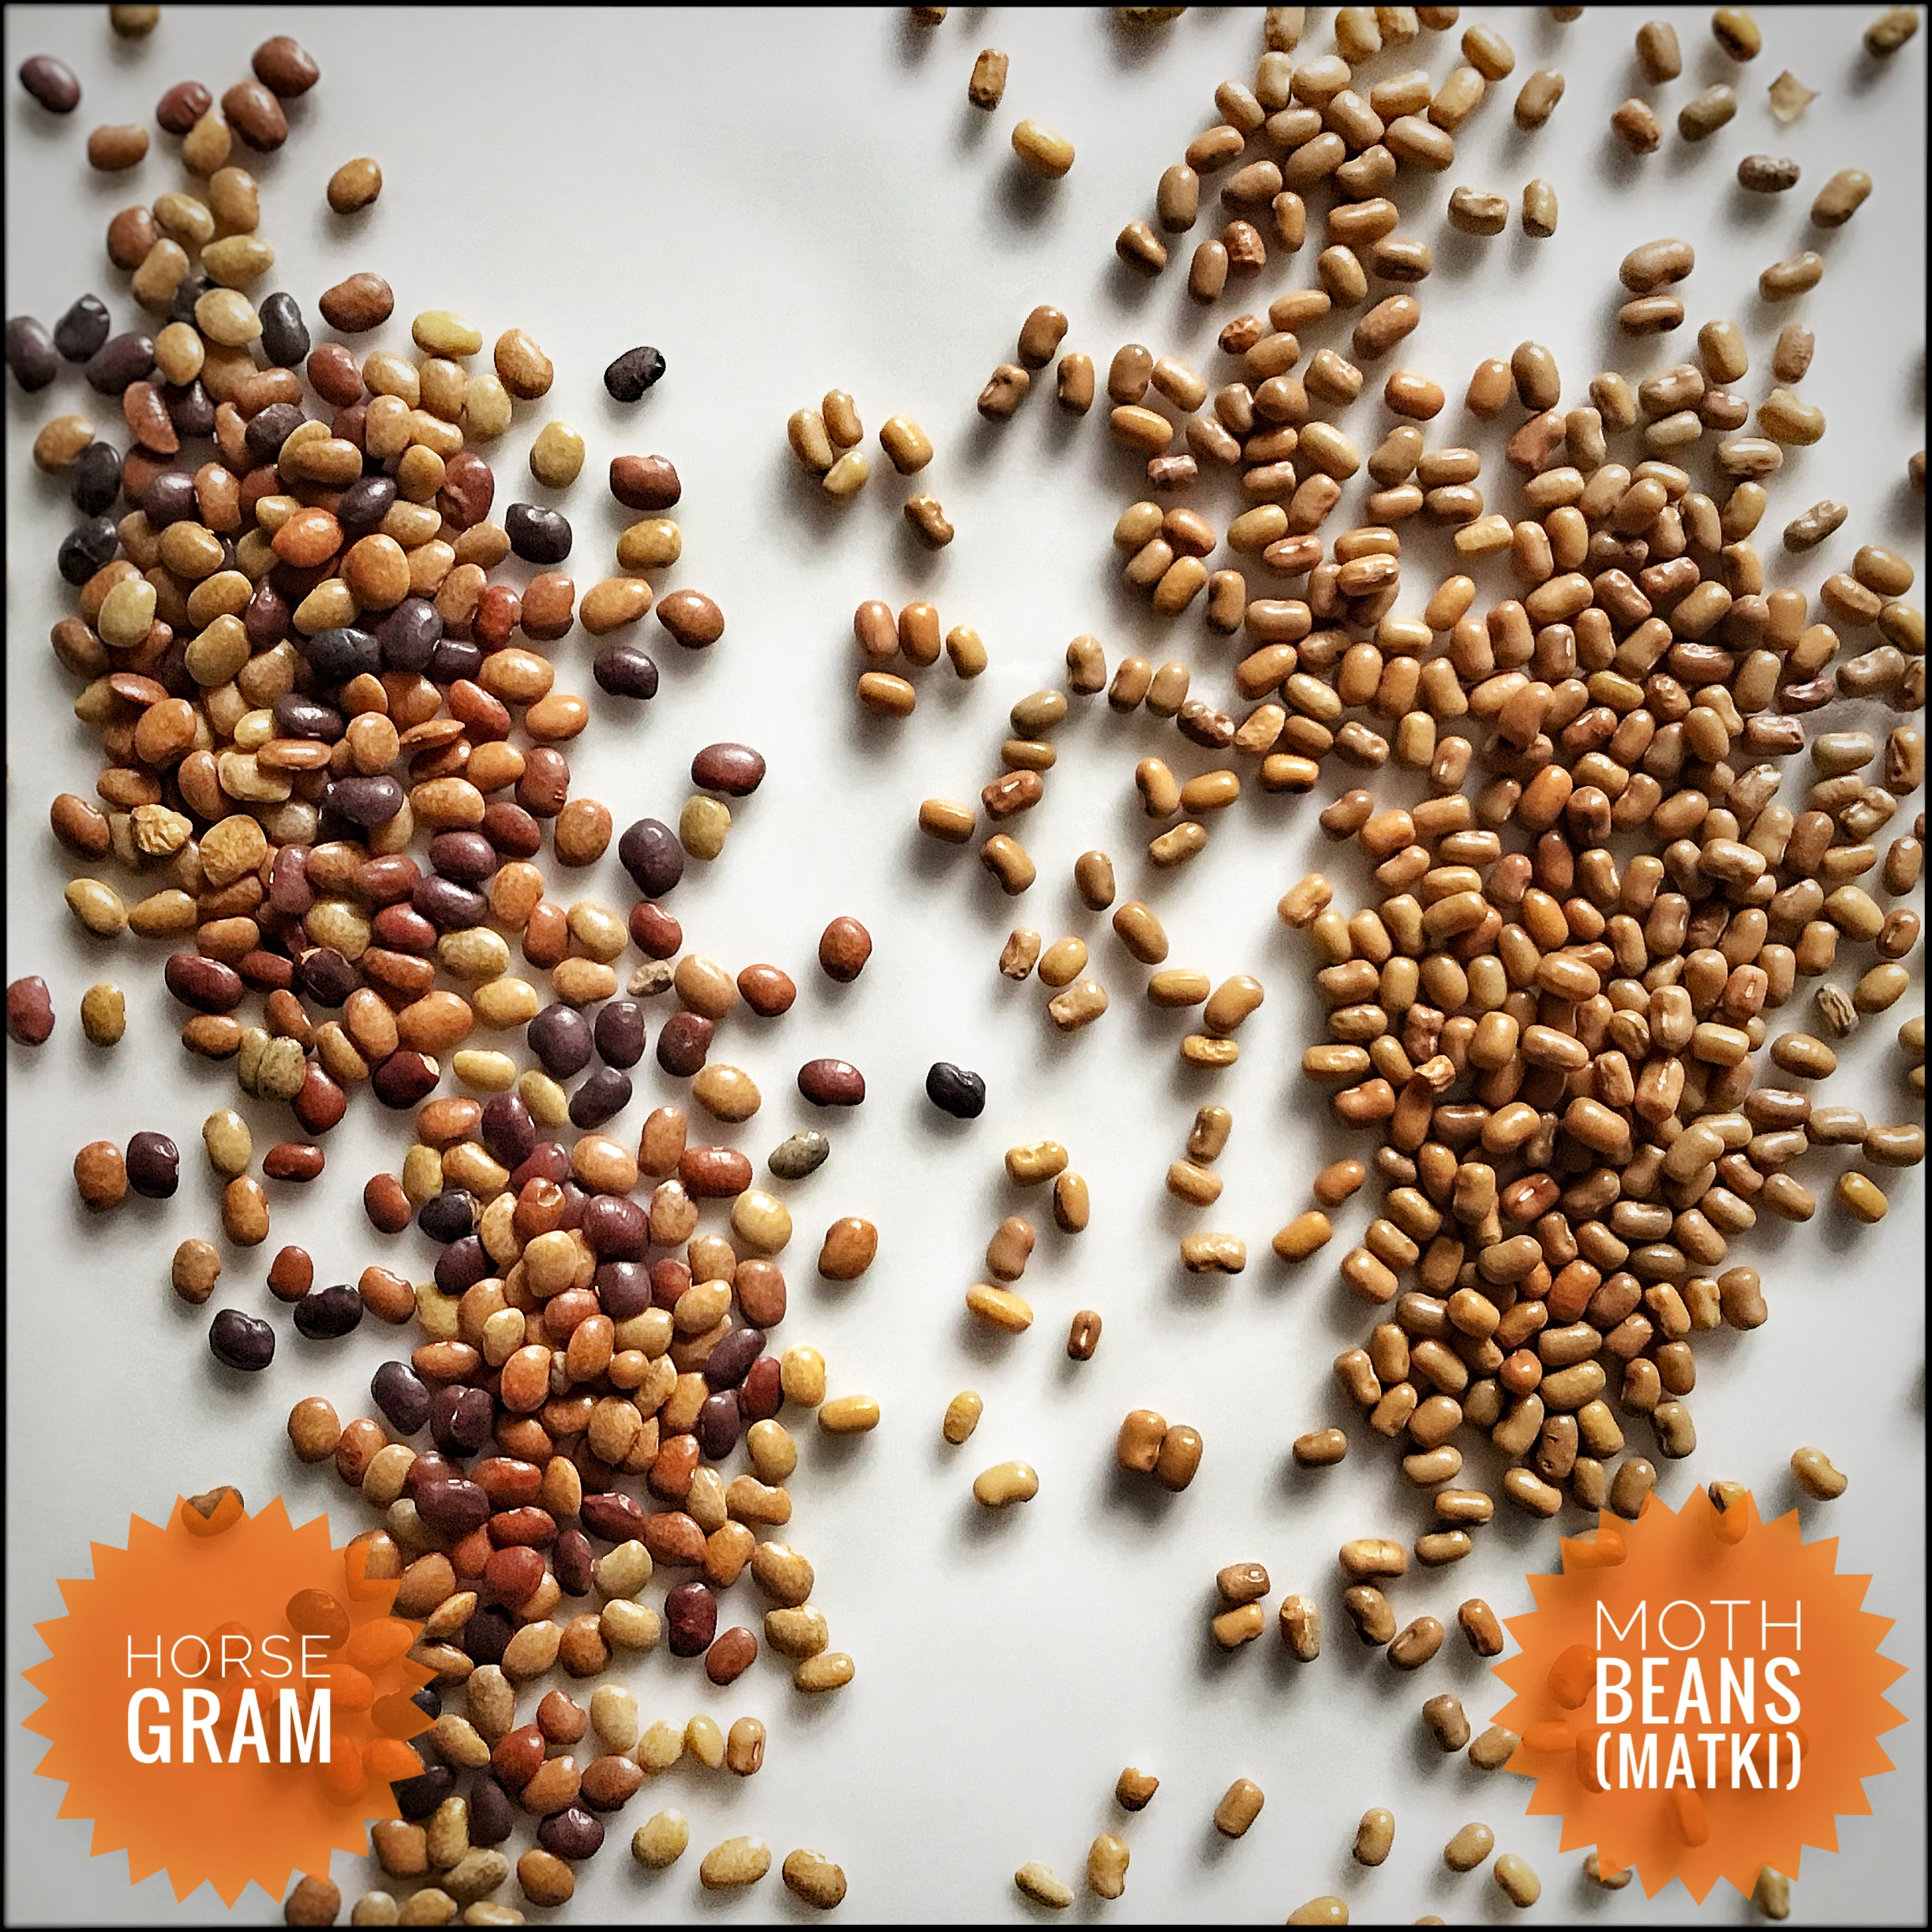 Moth Beans (Matki) and Horse Gram – Different lentils that look similar